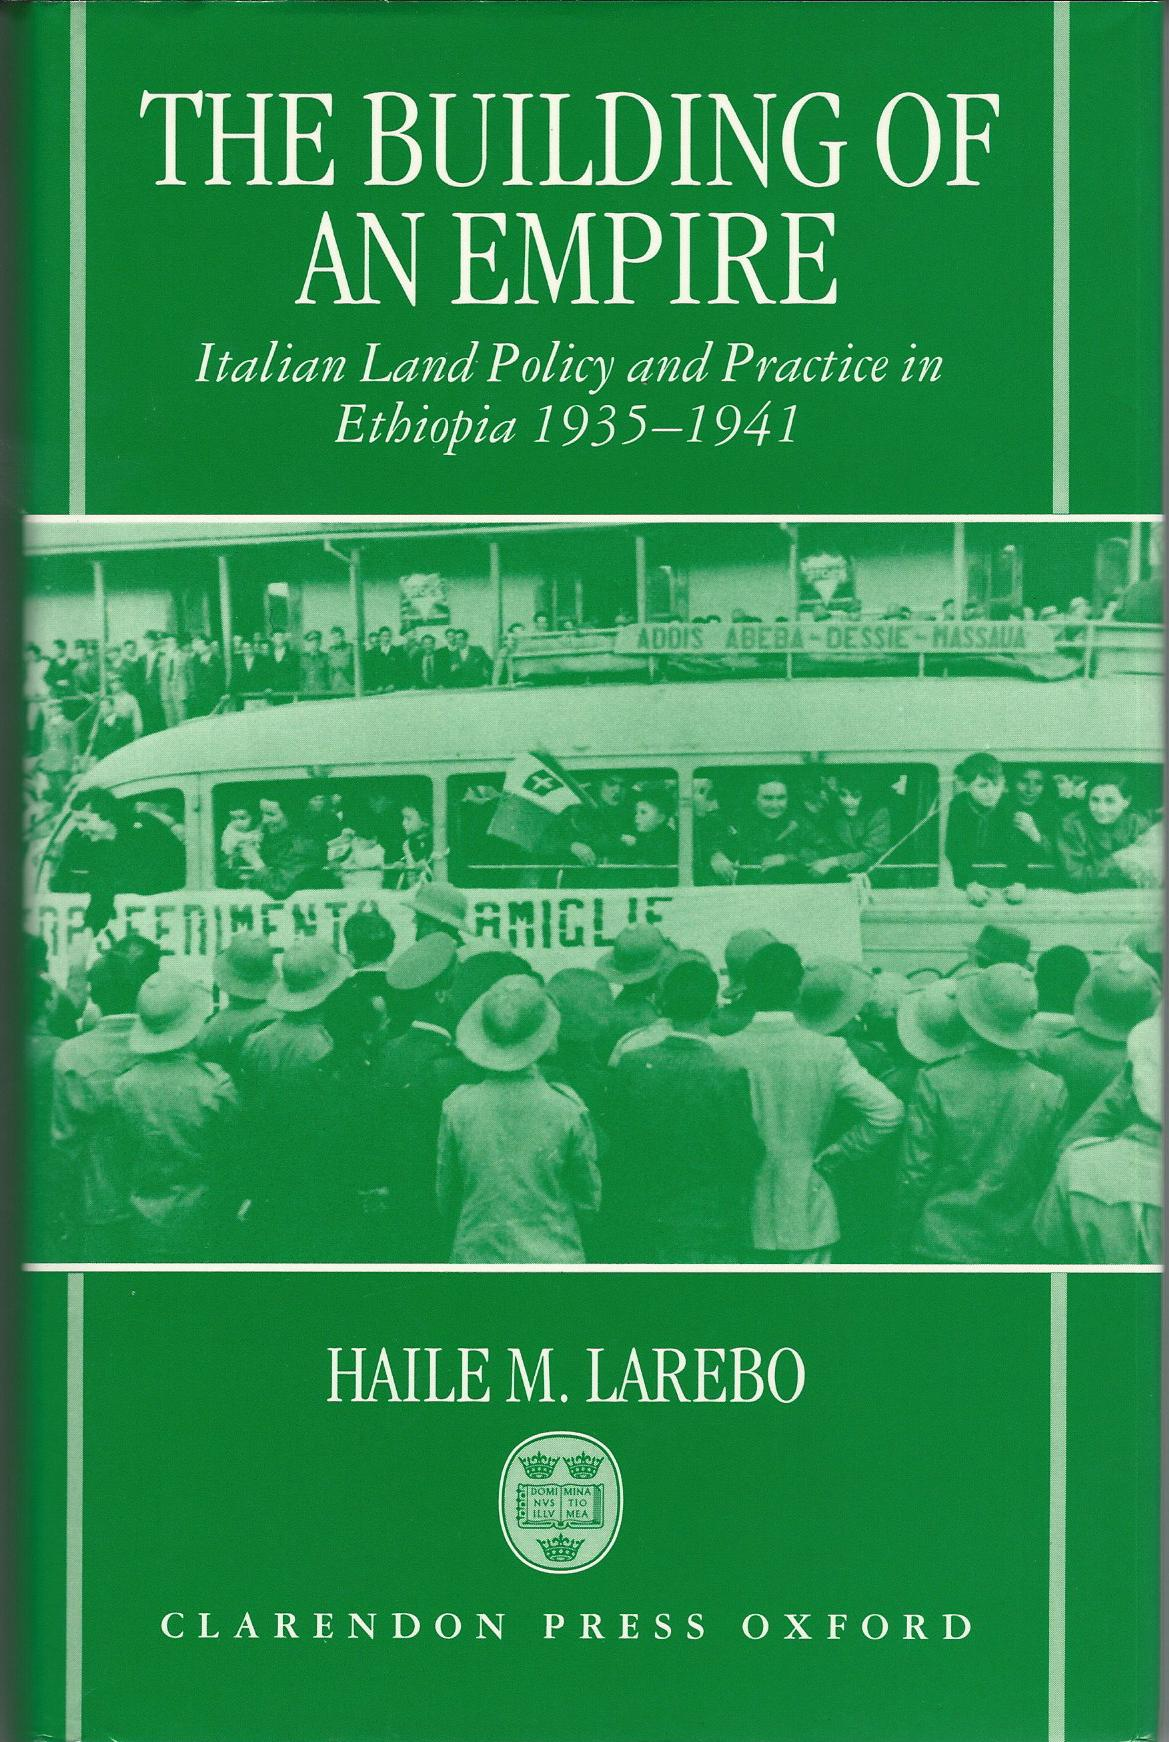 Image for The Building of an Empire: Italian Land Policy and Practice in Ethiopia 1935-1941 (Oxford Studies in African Affairs)